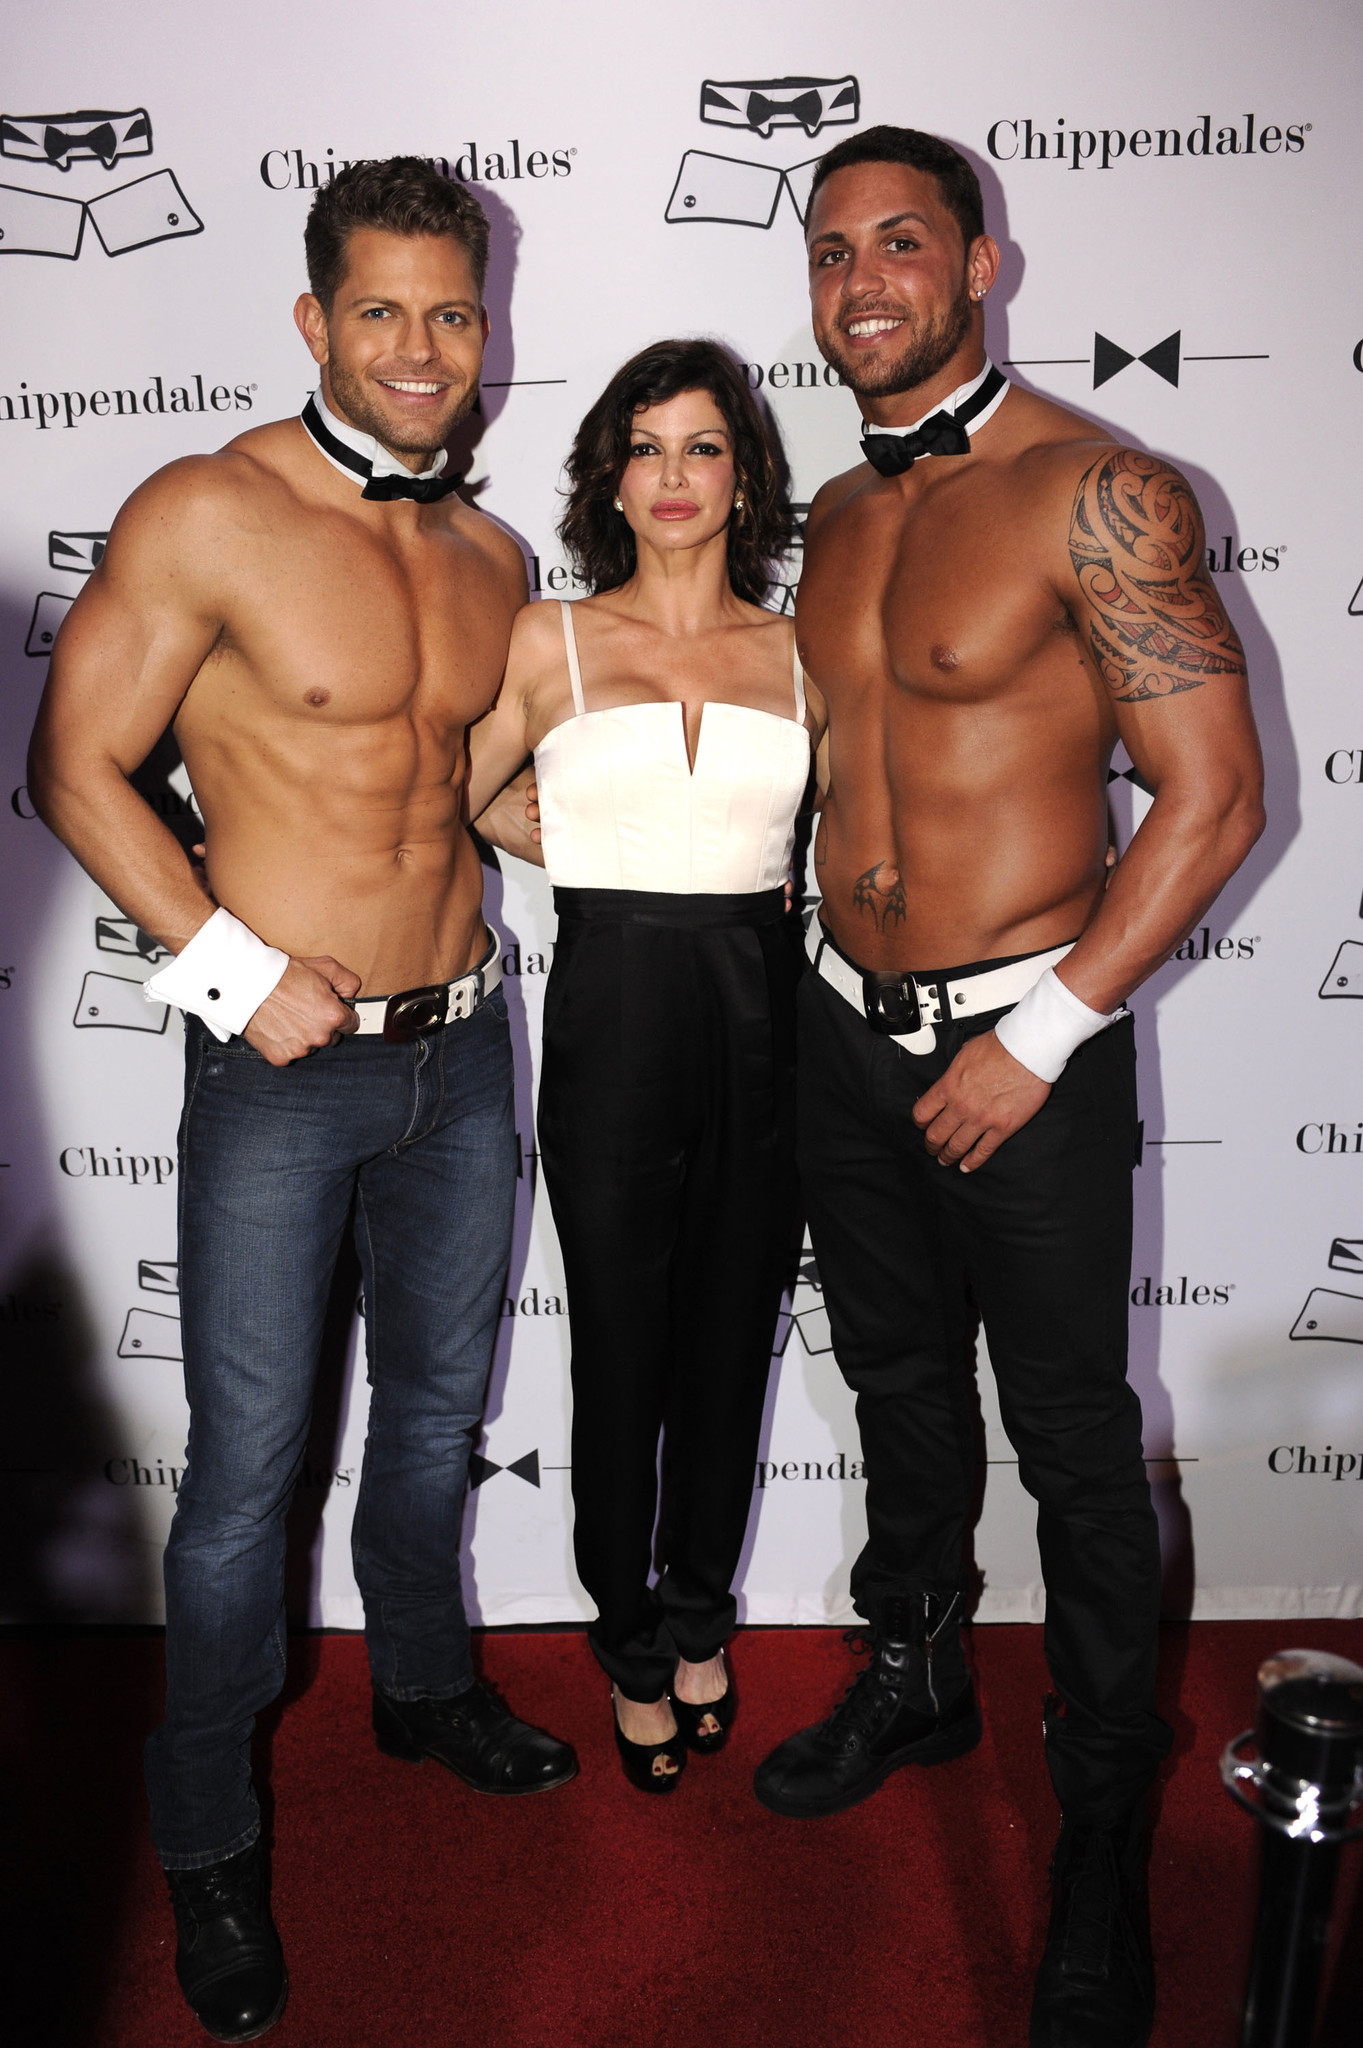 Chippendales open in Miami Beach - Jayme Vaughn, Carla Pellegrino and Matt Marshall1